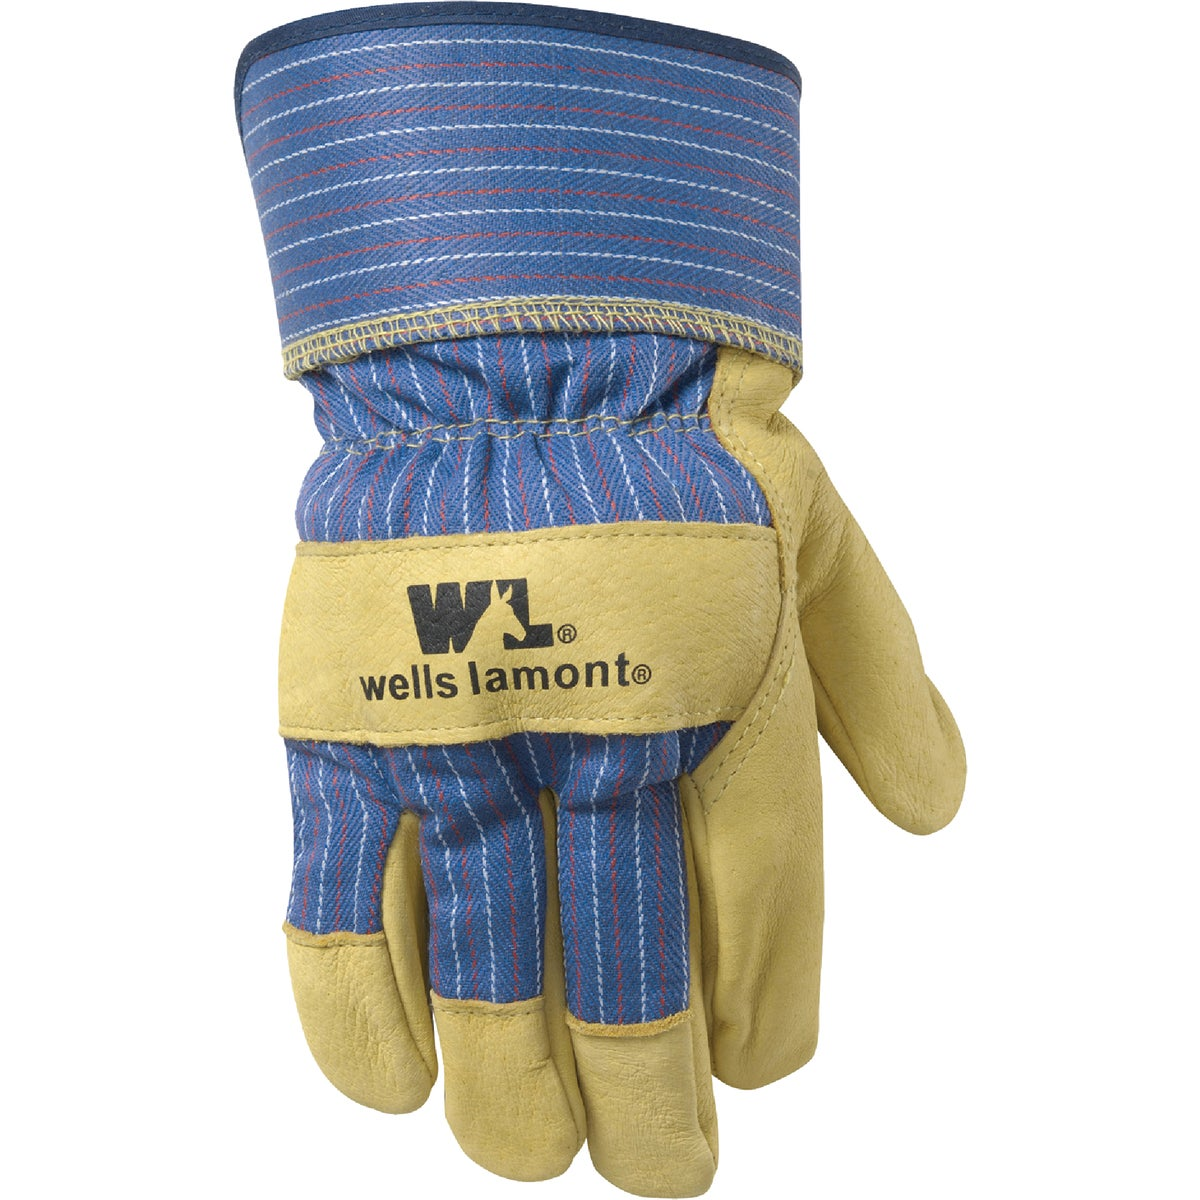 MED PIGSKIN PALM GLOVE - 3300M by Wells Lamont